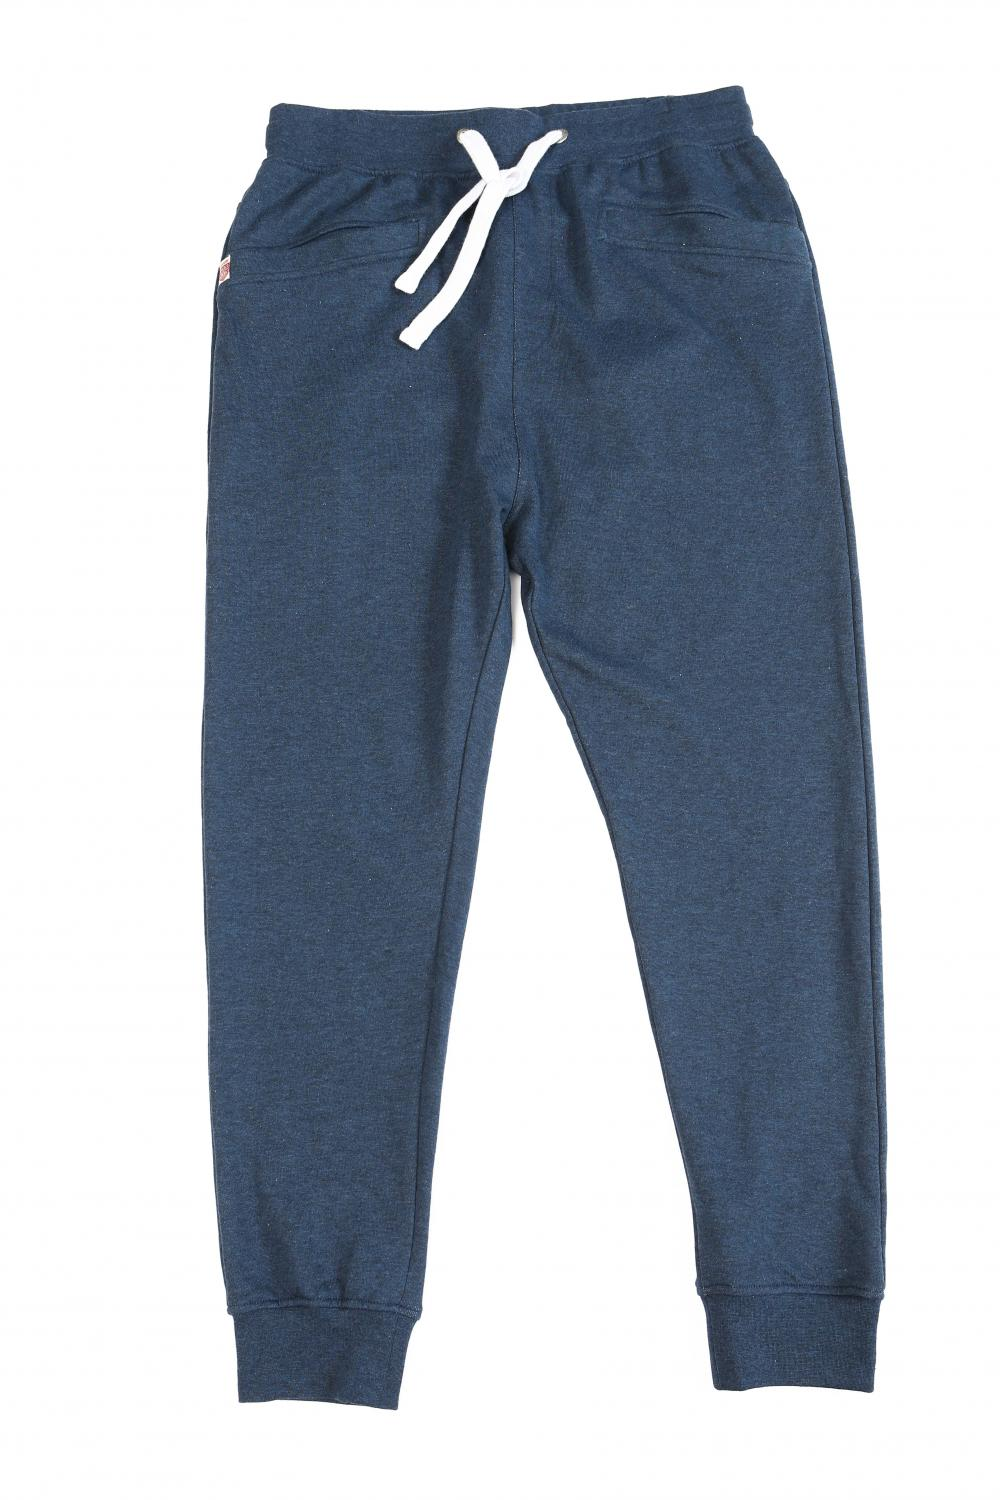 Men's knit running pants